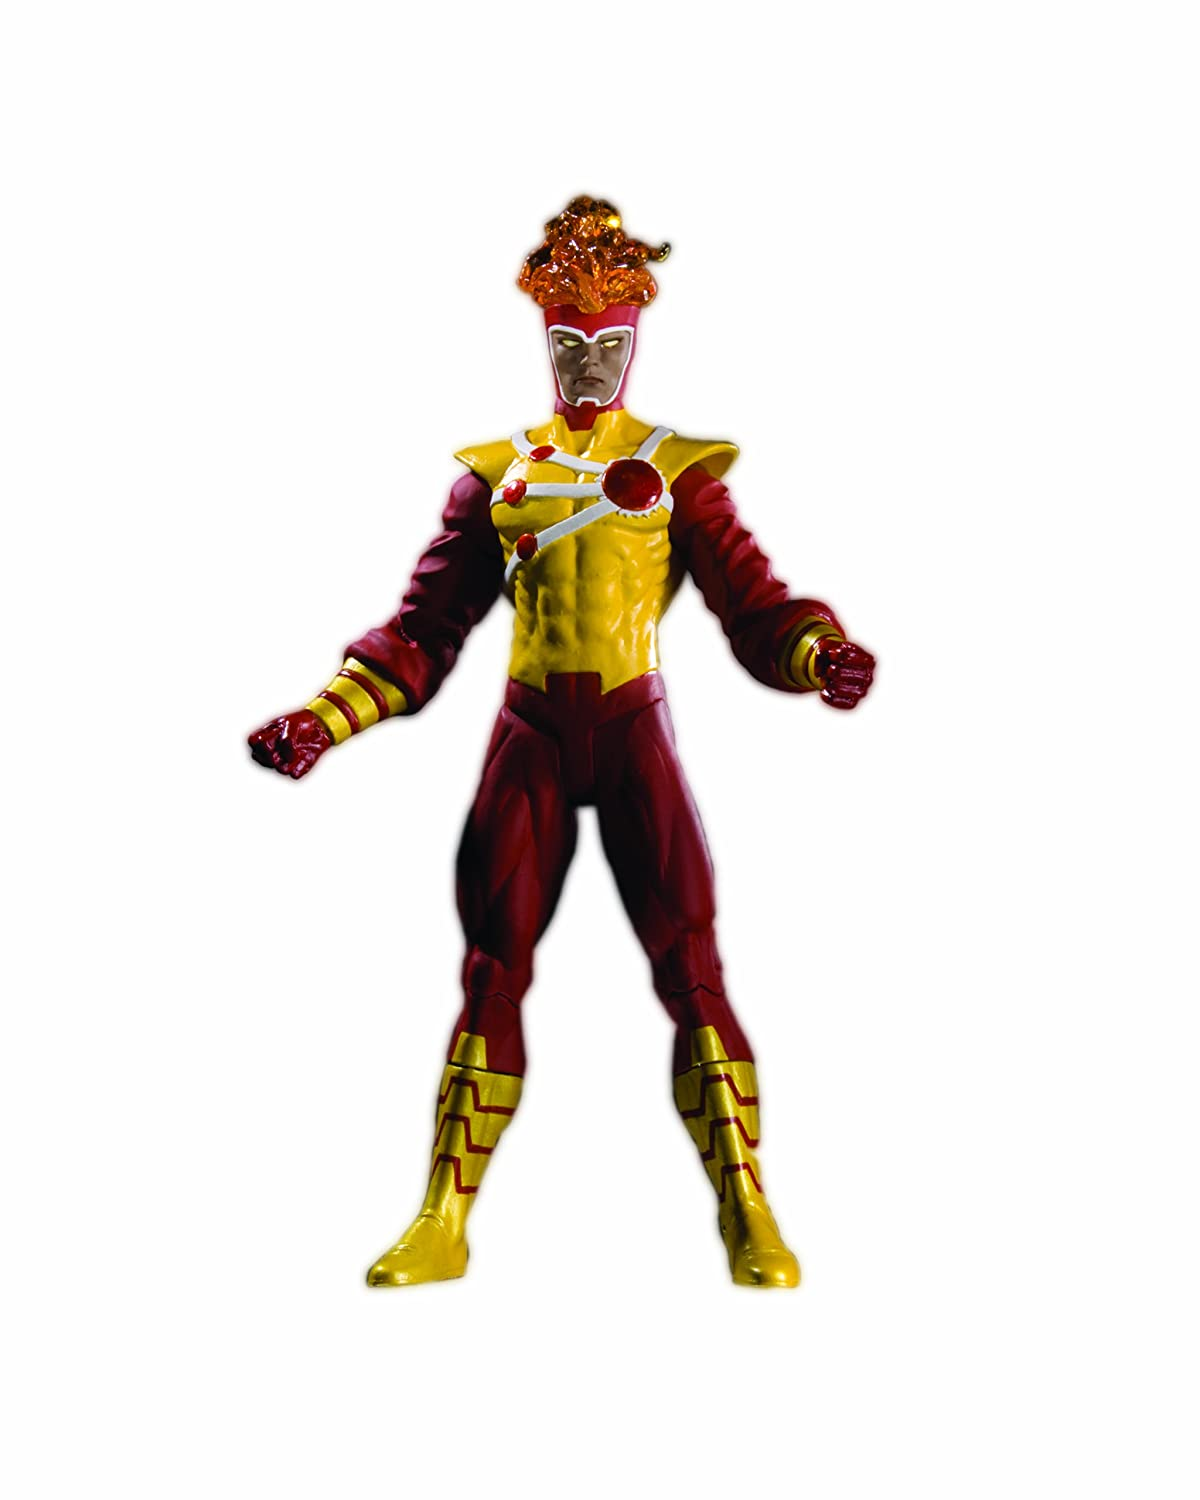 Firestorm - - - 6.75 inch Brightest Day Series 2 Action Figure 5cb94b